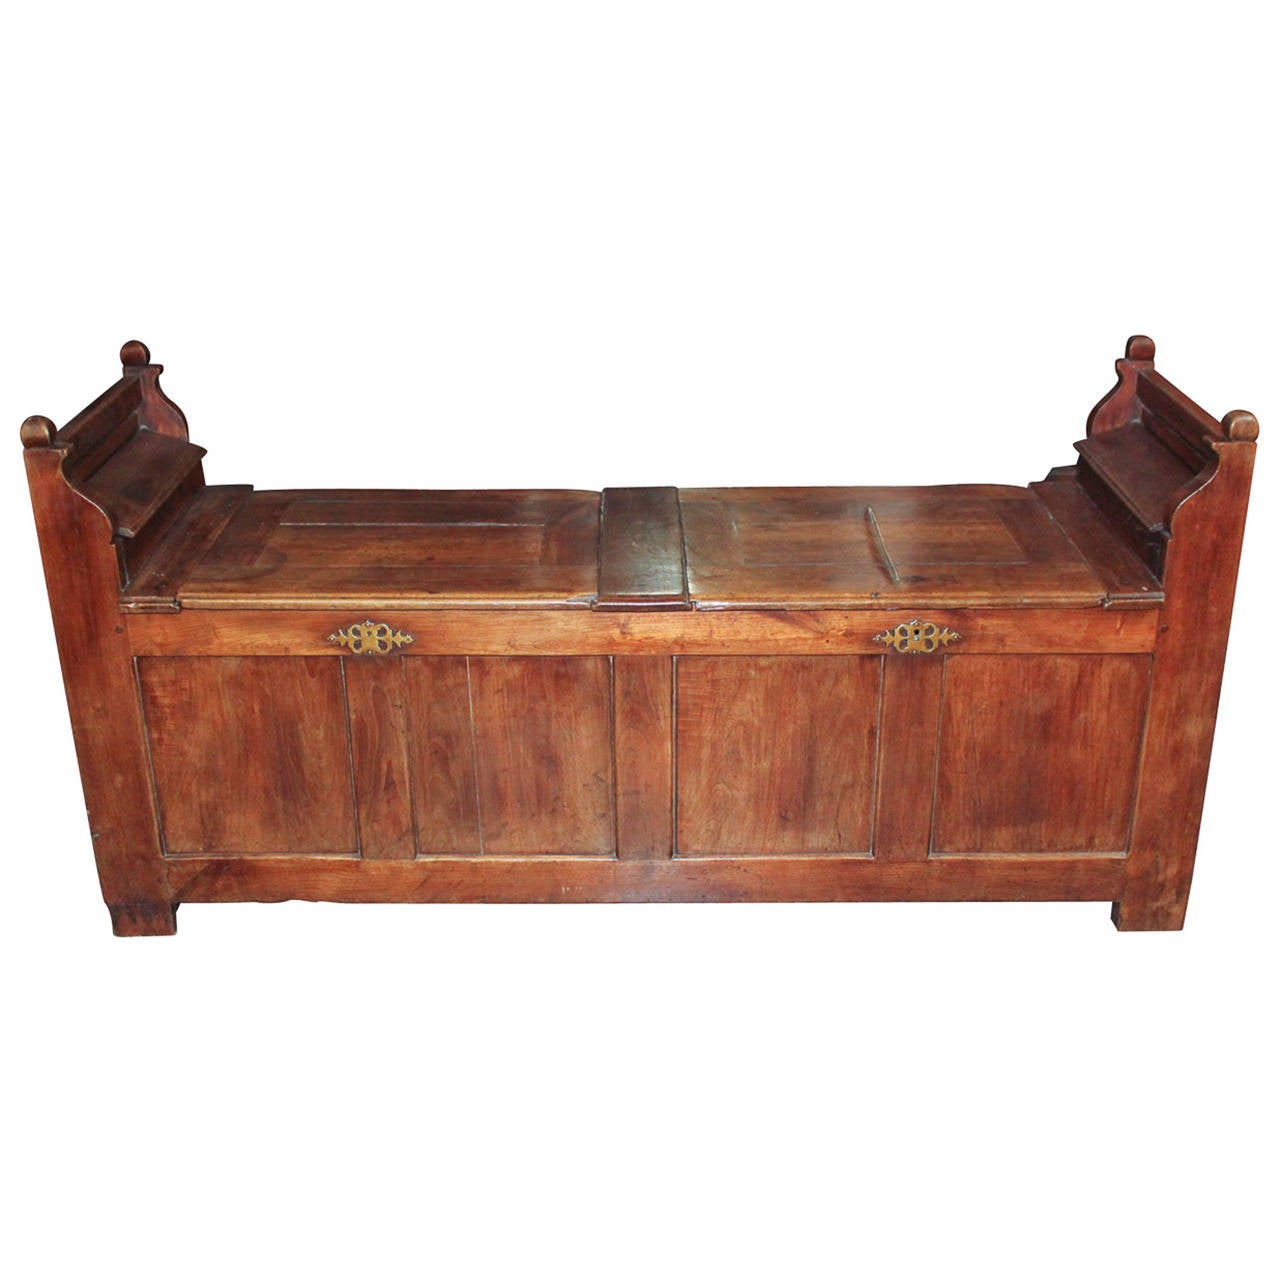 Early 19th c. English Oak Blanket Chest